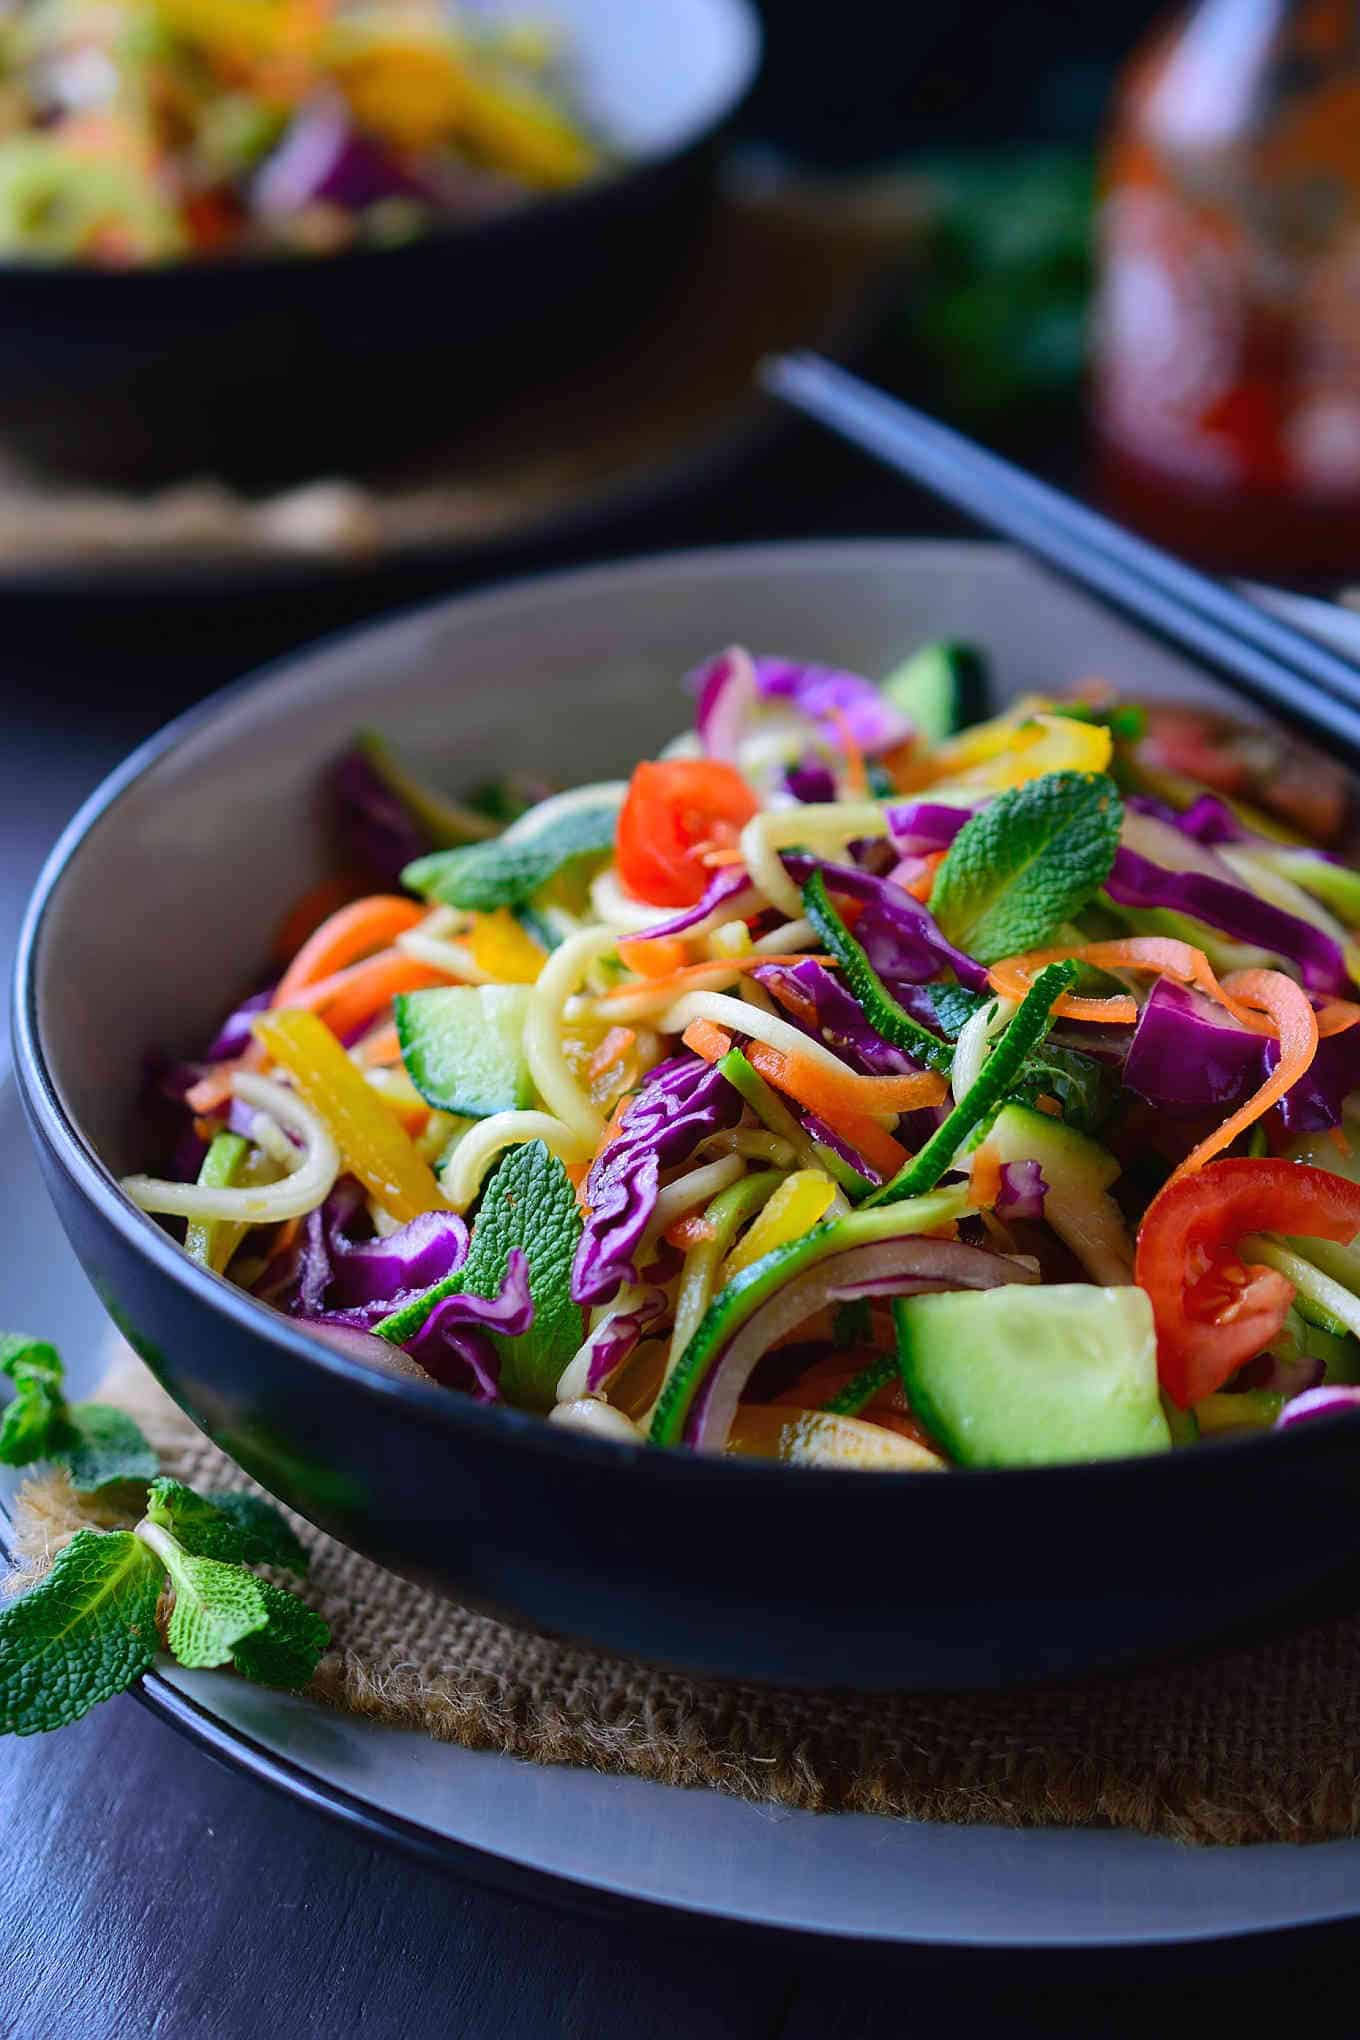 Raw veggie noodles for an easy vegan lunch